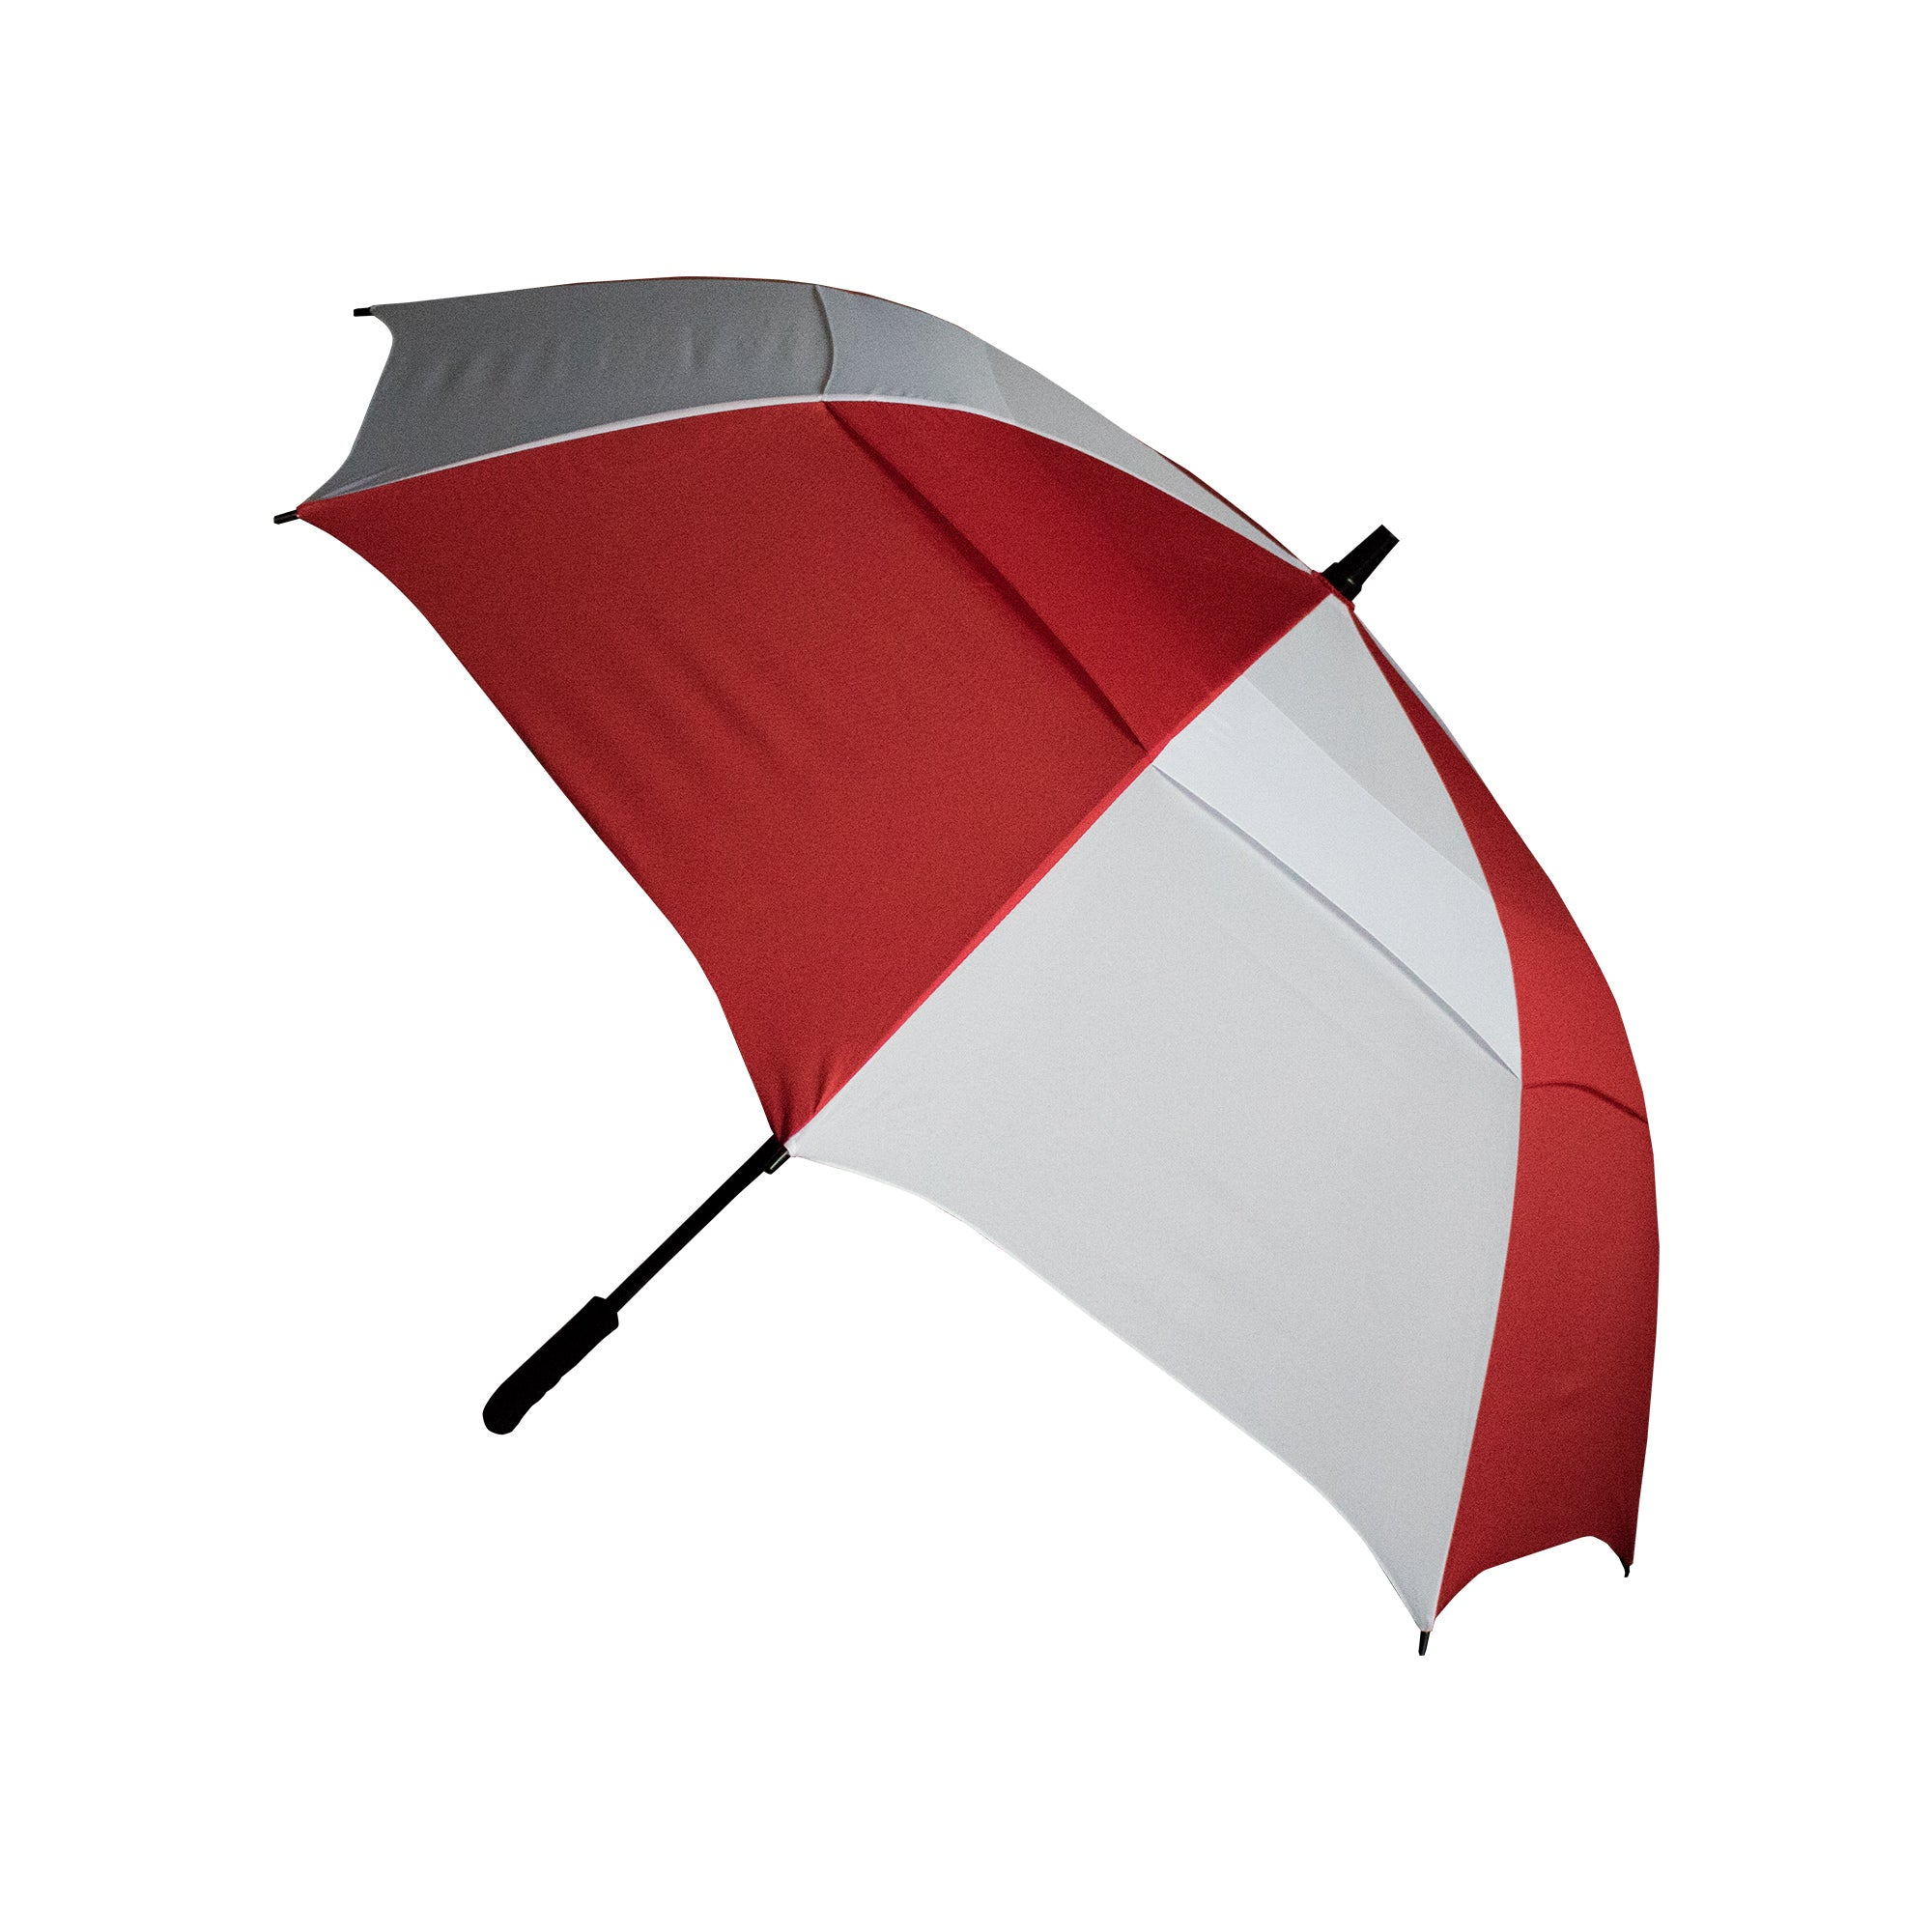 30 INCH STORM PROOF UMBRELLAS